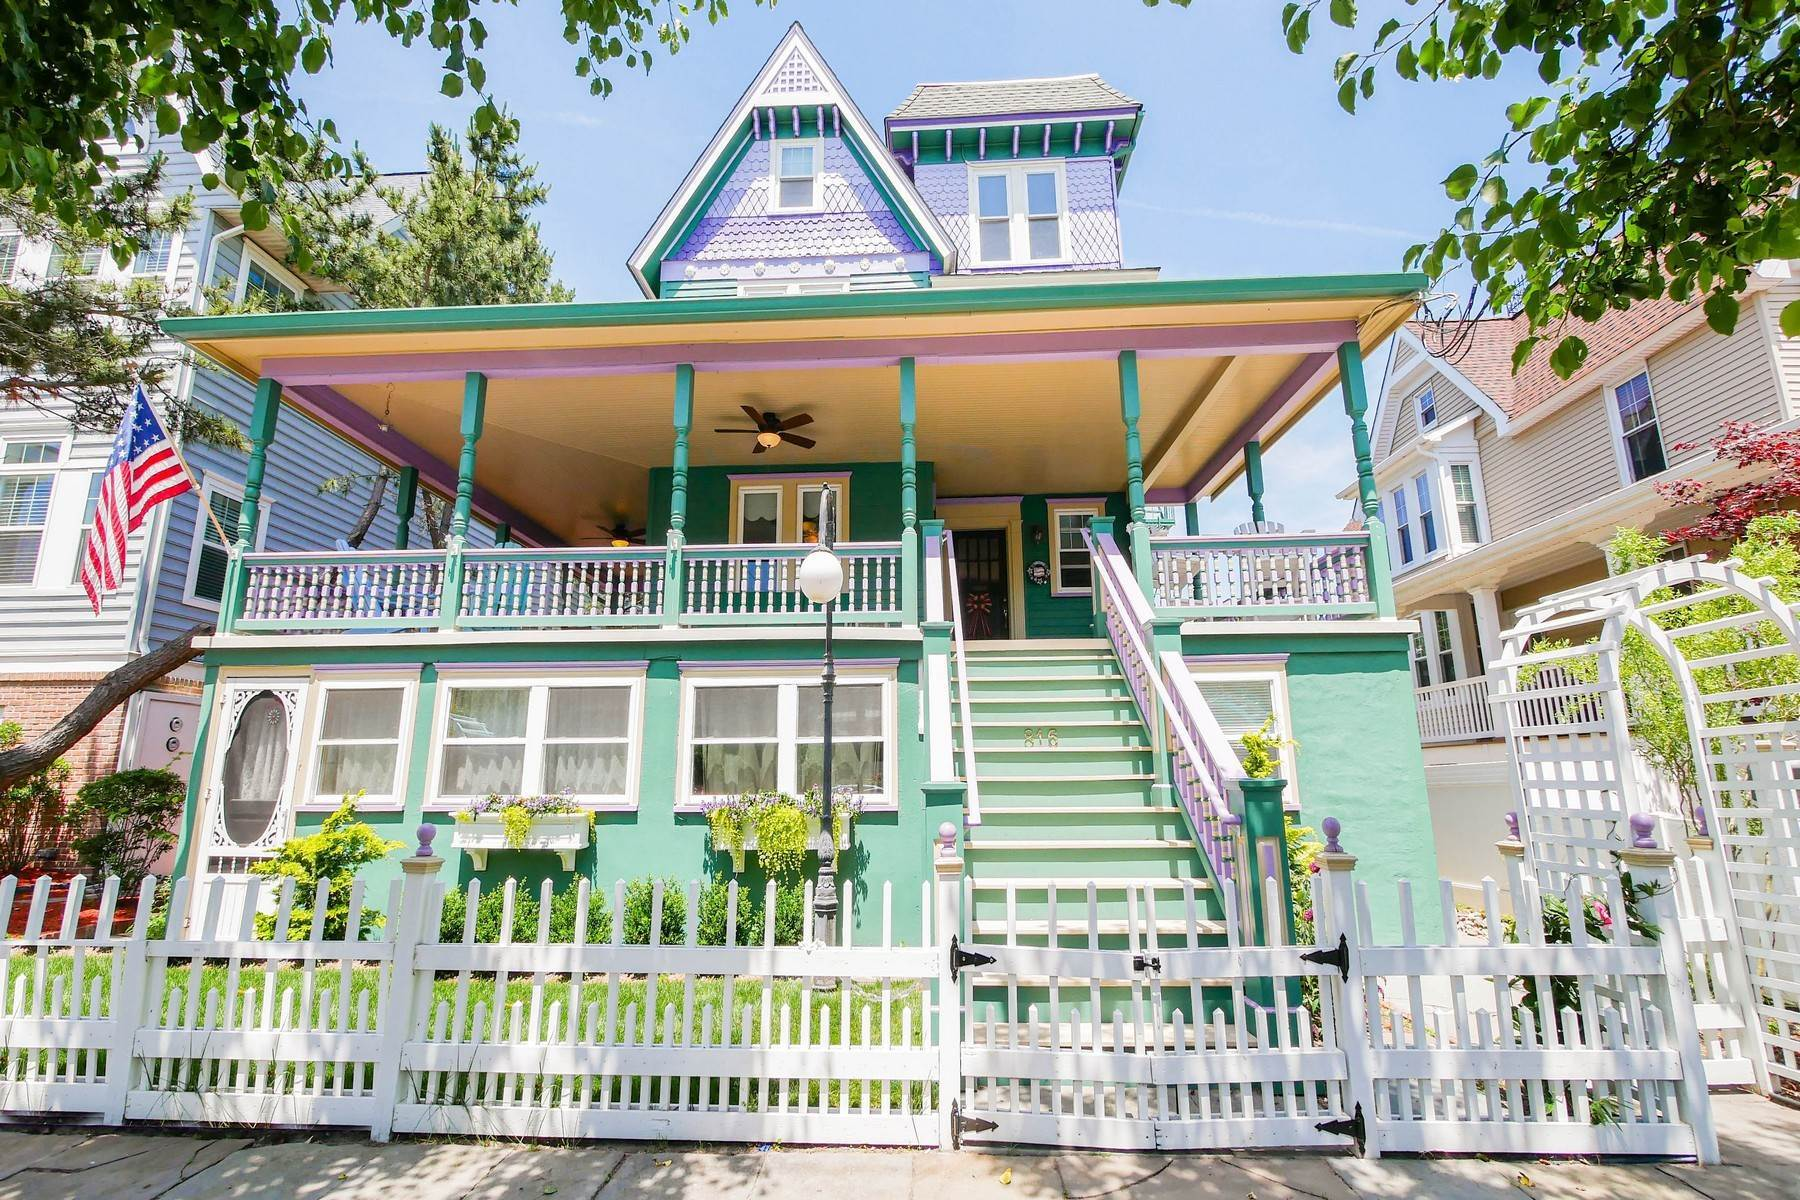 Multi-Family Homes for Sale at The Painted Lady Victorian Home 816 Wesley Ave Ocean City, New Jersey 08226 United States